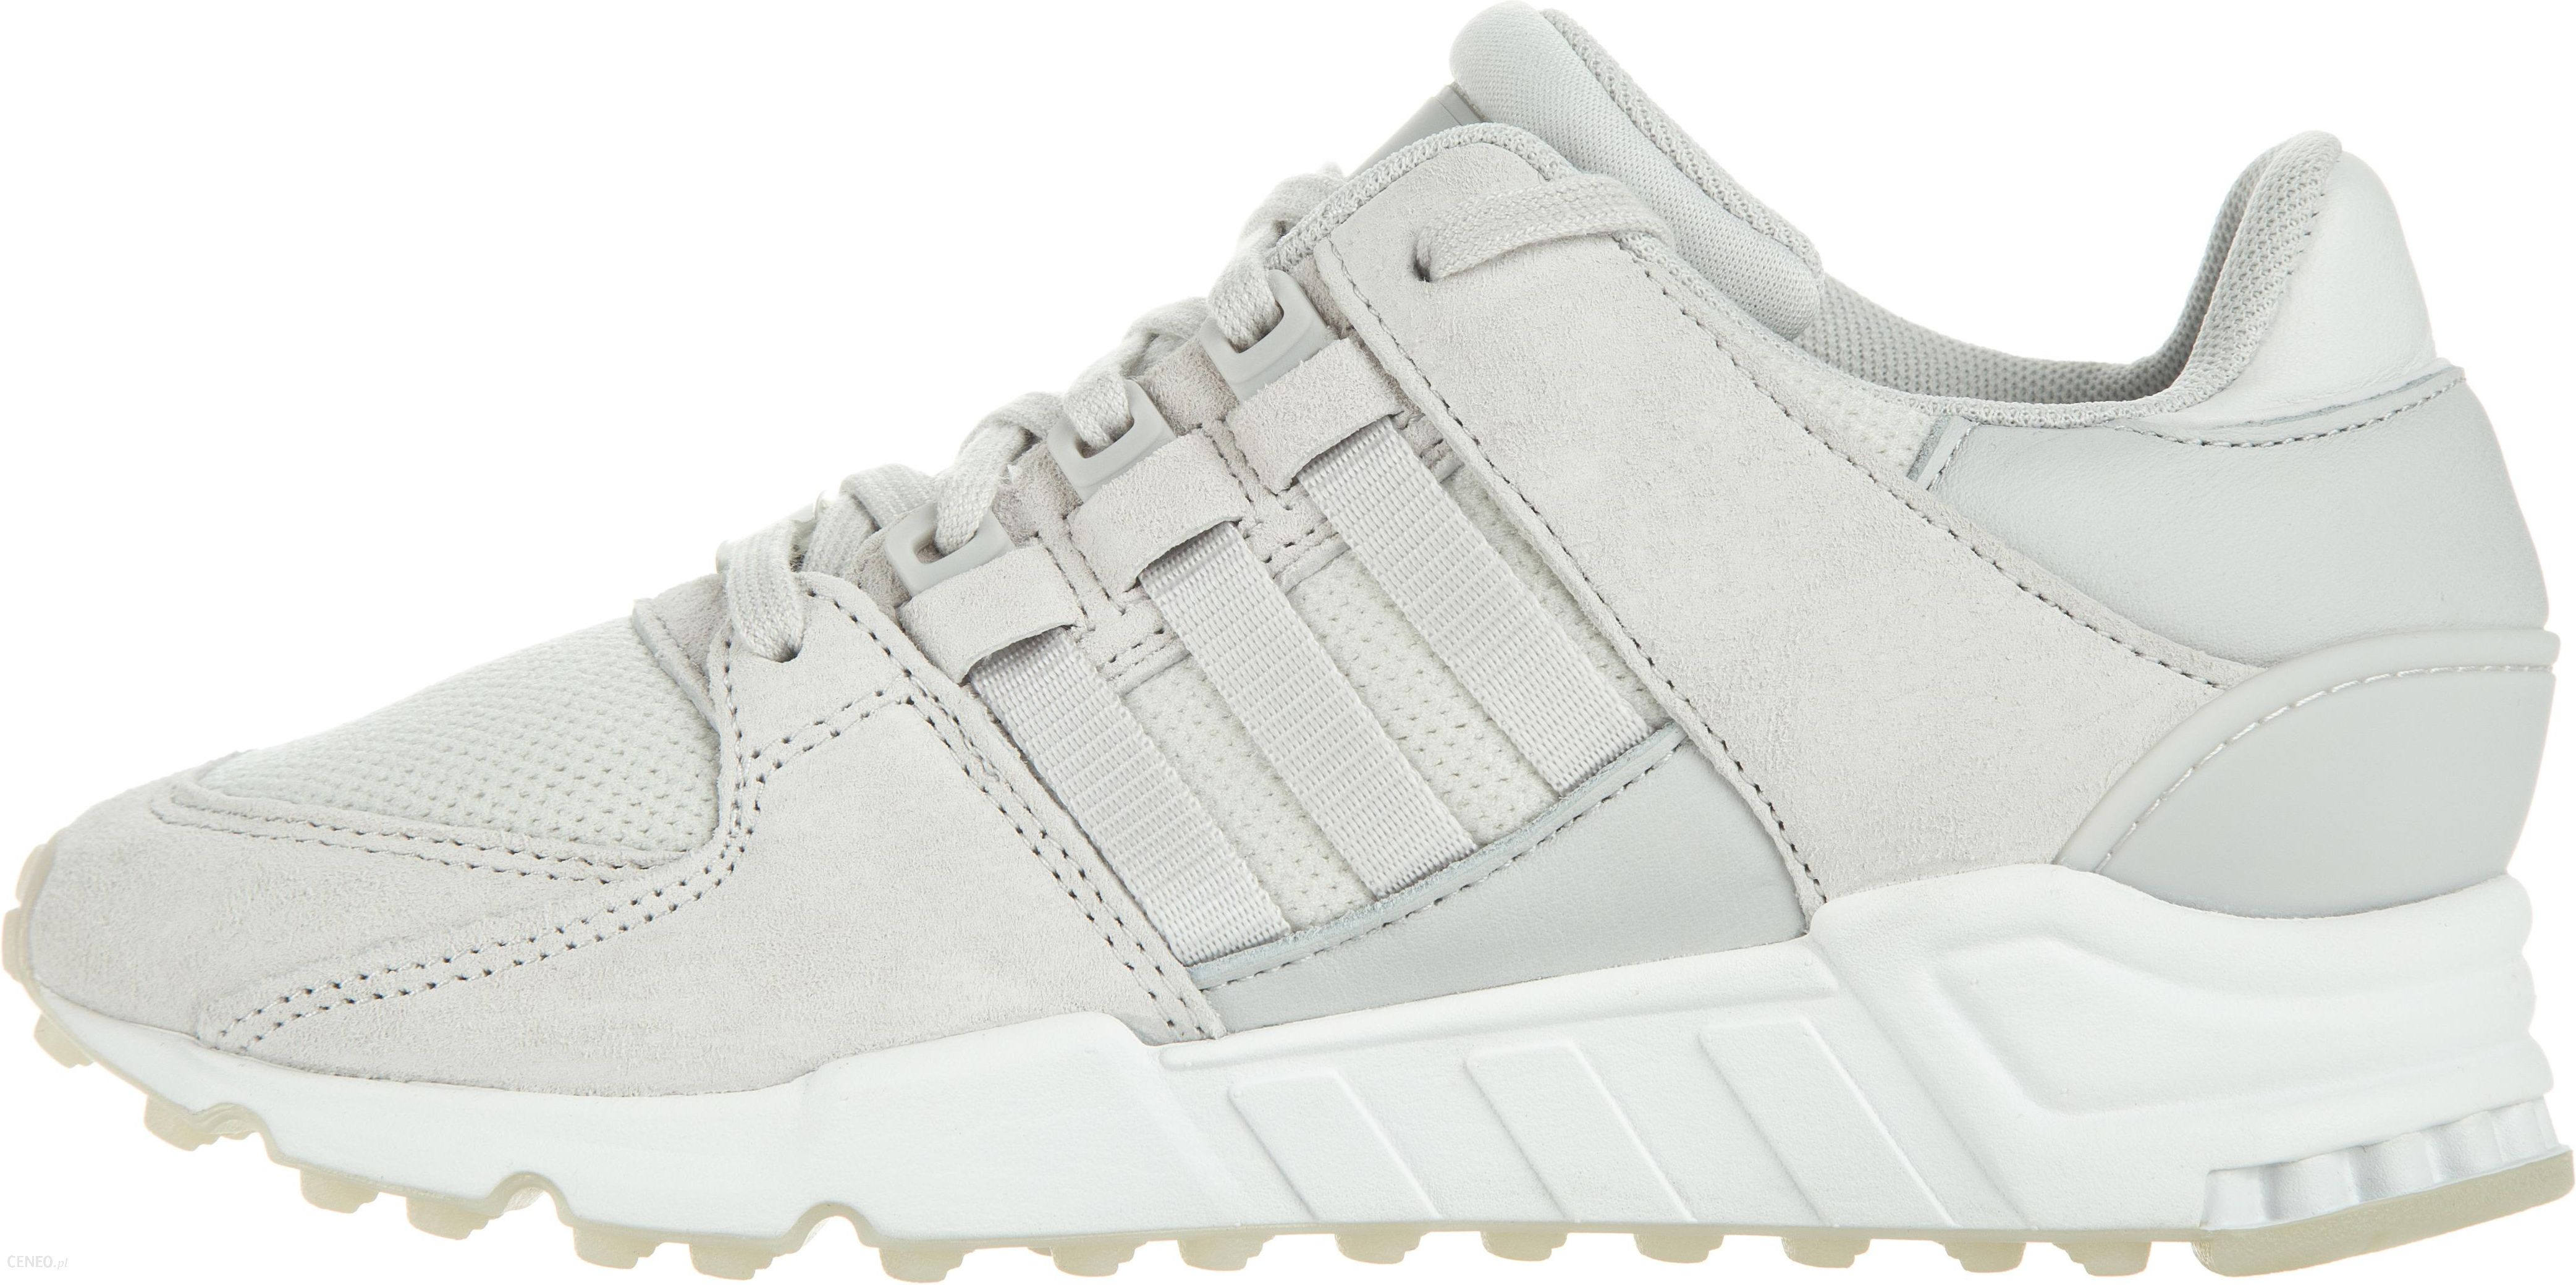 brand new 32456 d8701 Adidas Originals EQT Support Rf Sneakers Szary 37 1/3 - Ceny i opinie -  Ceneo.pl